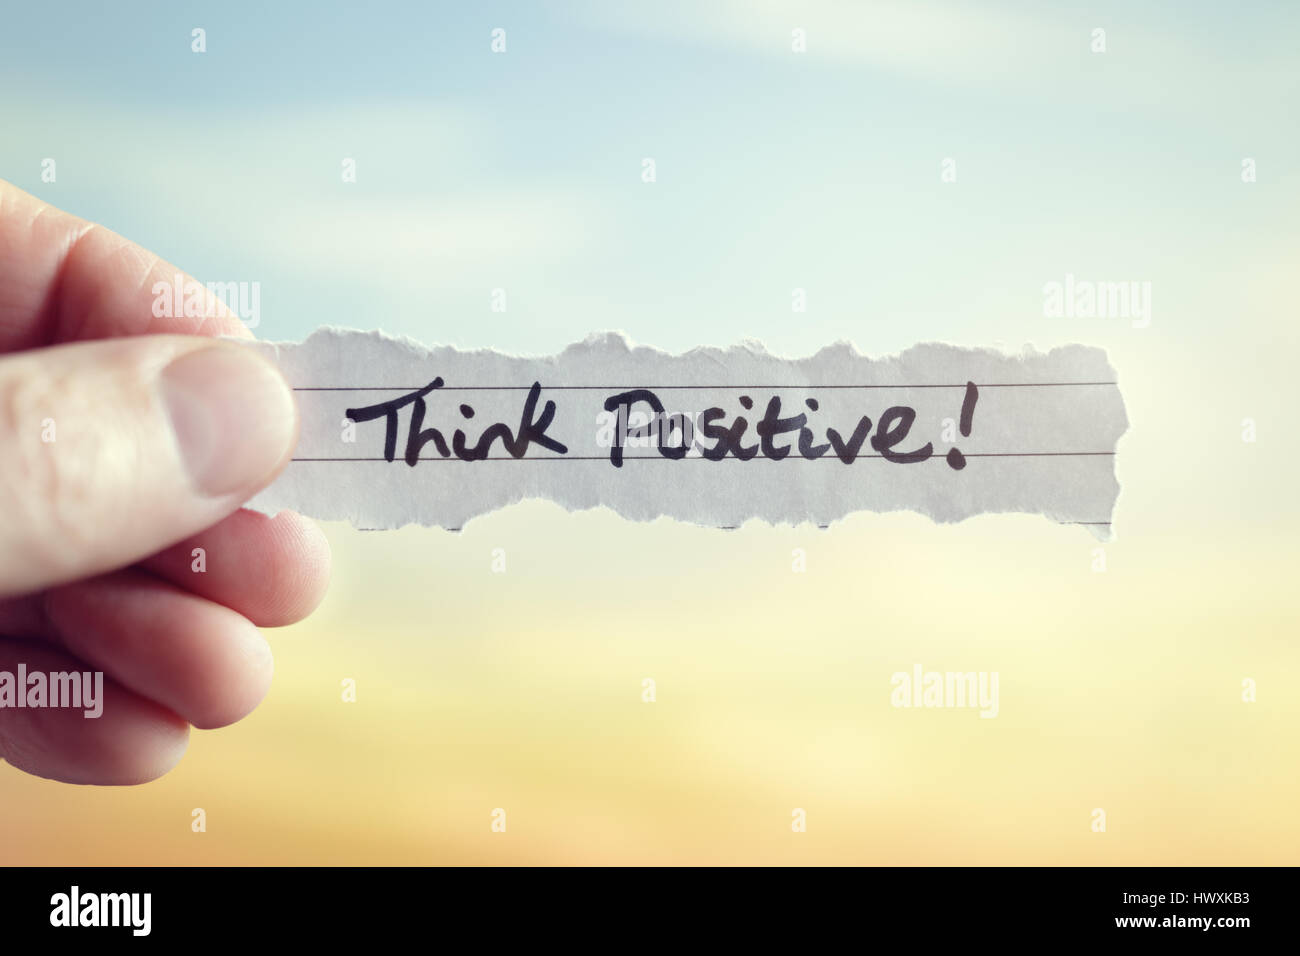 Think positive message concept for optimistic thinking and self belief - Stock Image